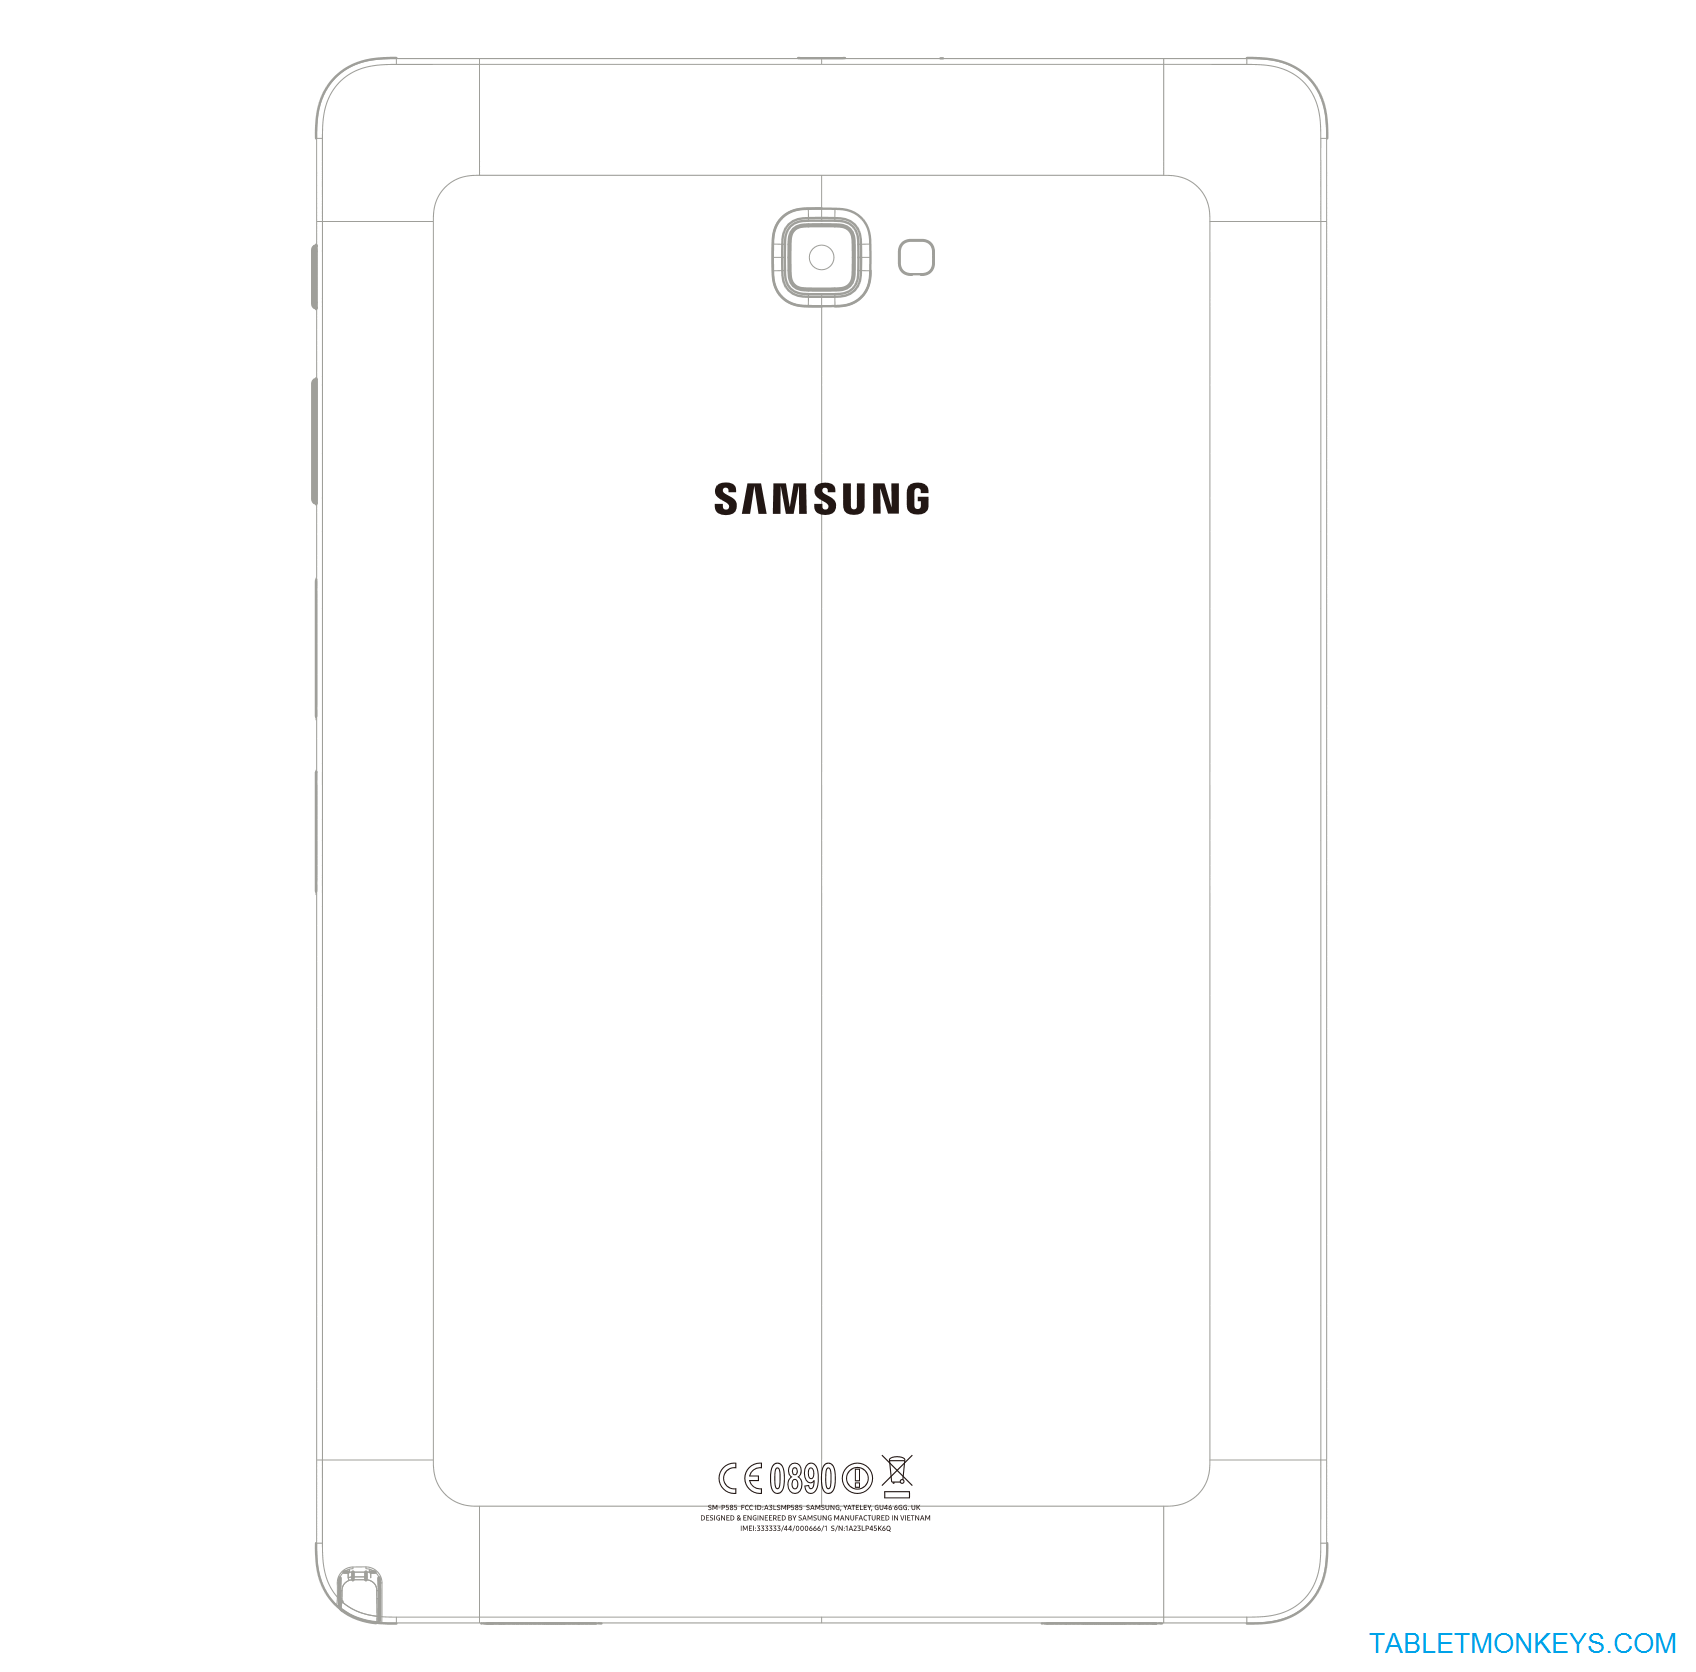 Samsung Galaxy Tab A 10.1 With S Pen SM-P585